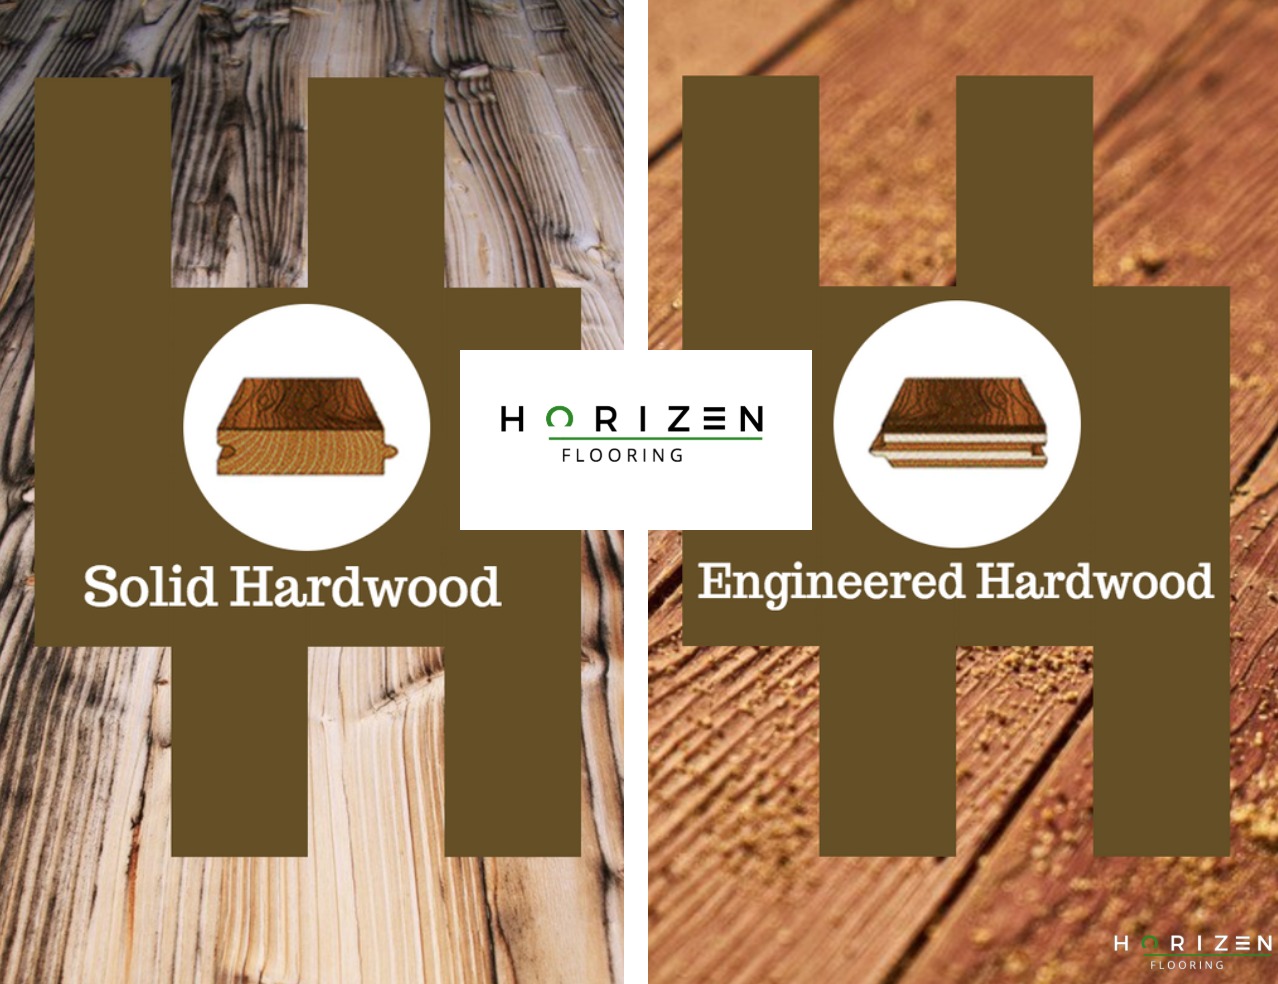 This is a picture of a solid hardwood cross section and a engineered hardwood cross section, with the Horizen Flooring company logo in between.